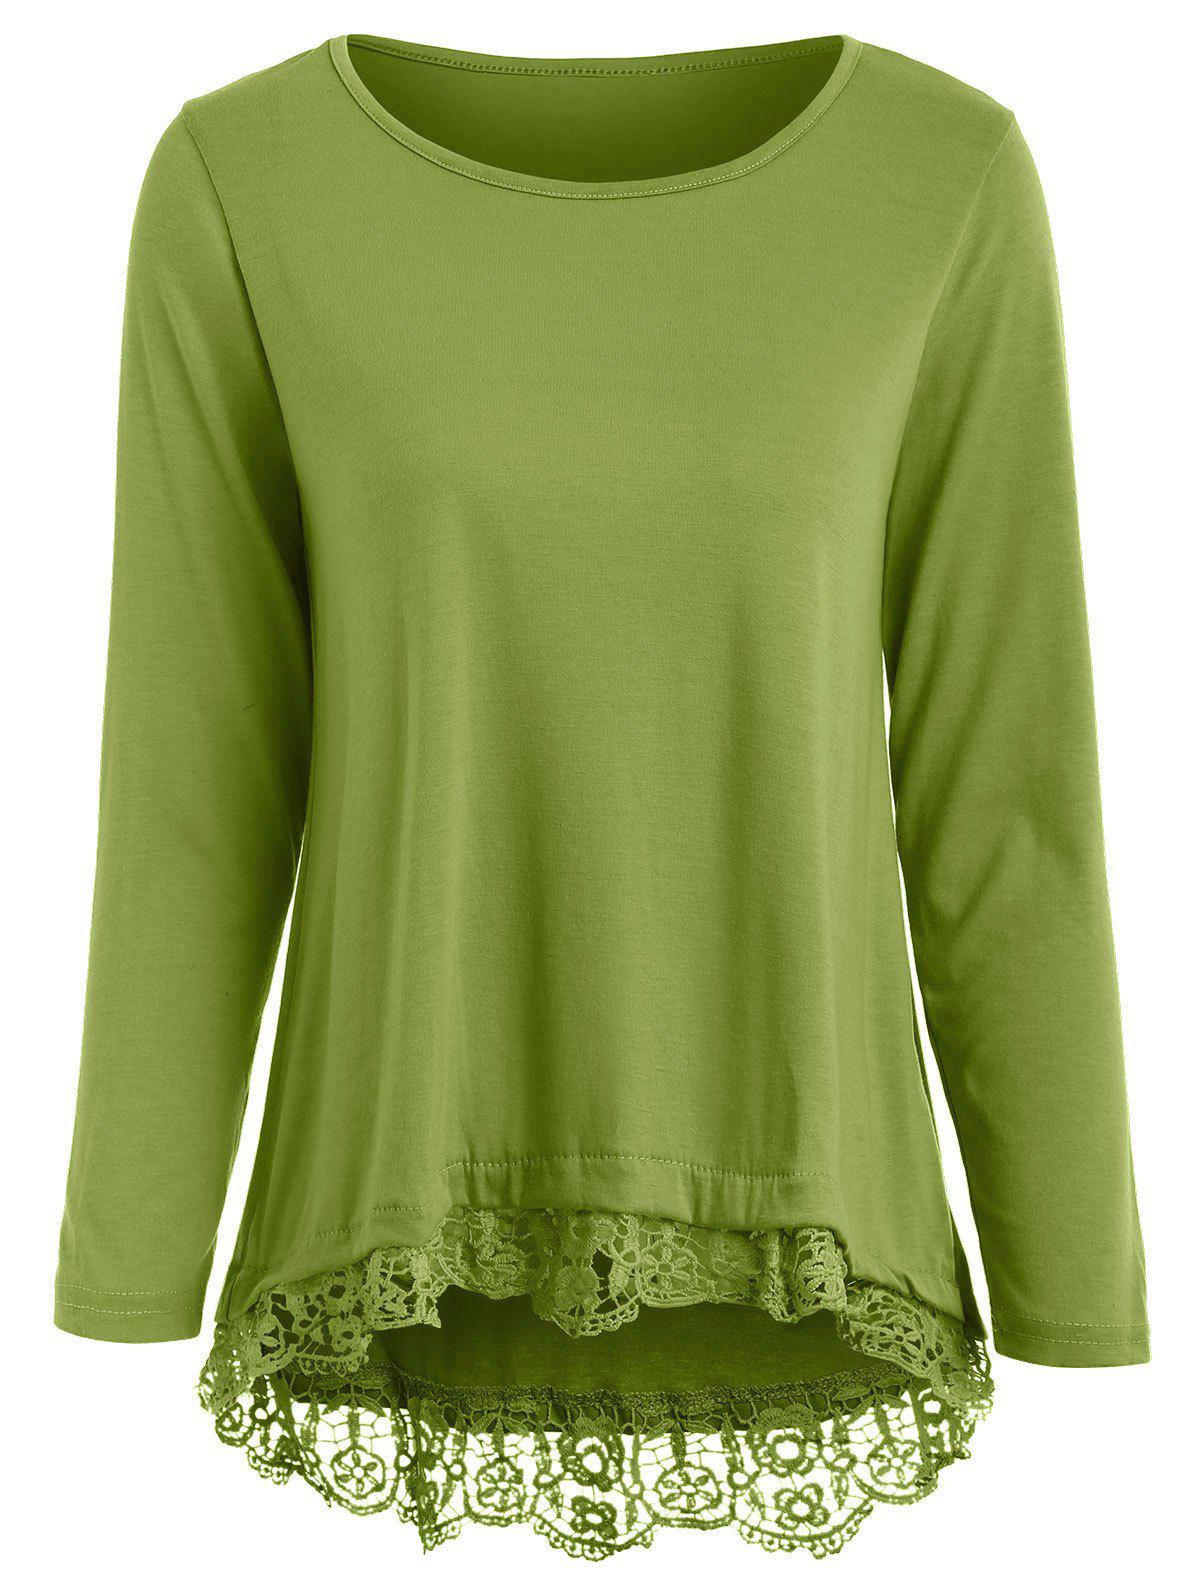 Charming Lace Spliced Hem Long Sleeve Solid Color T-Shirt For Women - ARMY GREEN L